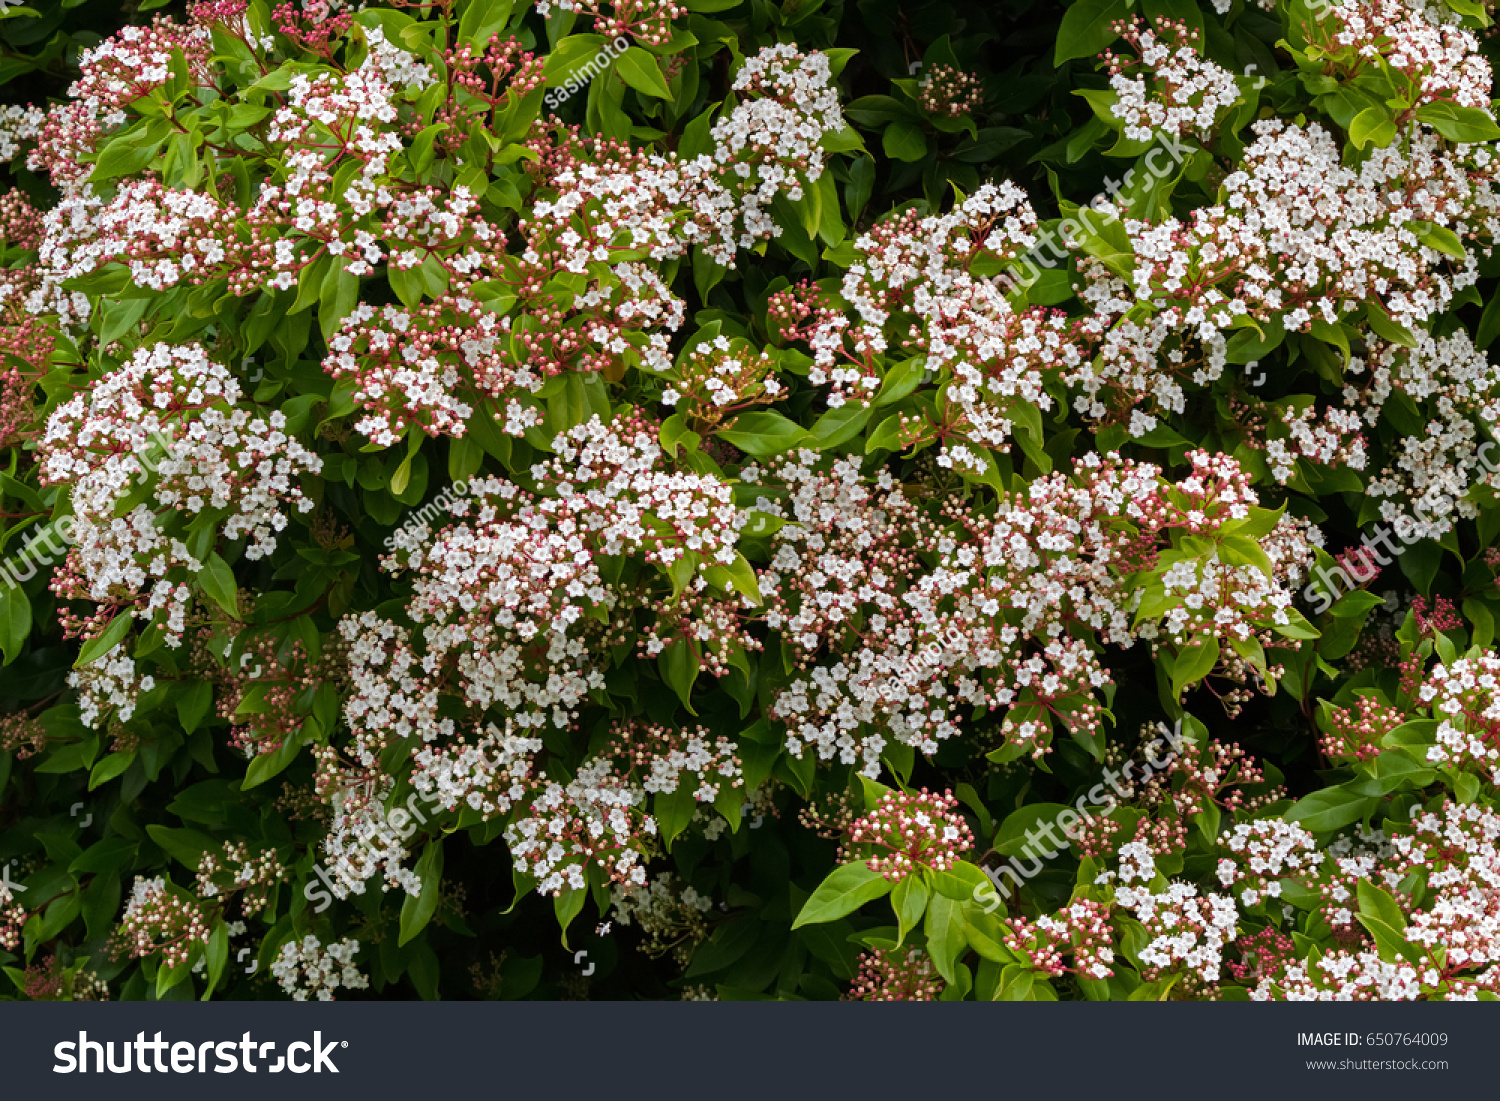 Small White Flowers Pink Buds Viburnum Stock Photo 100 Legal